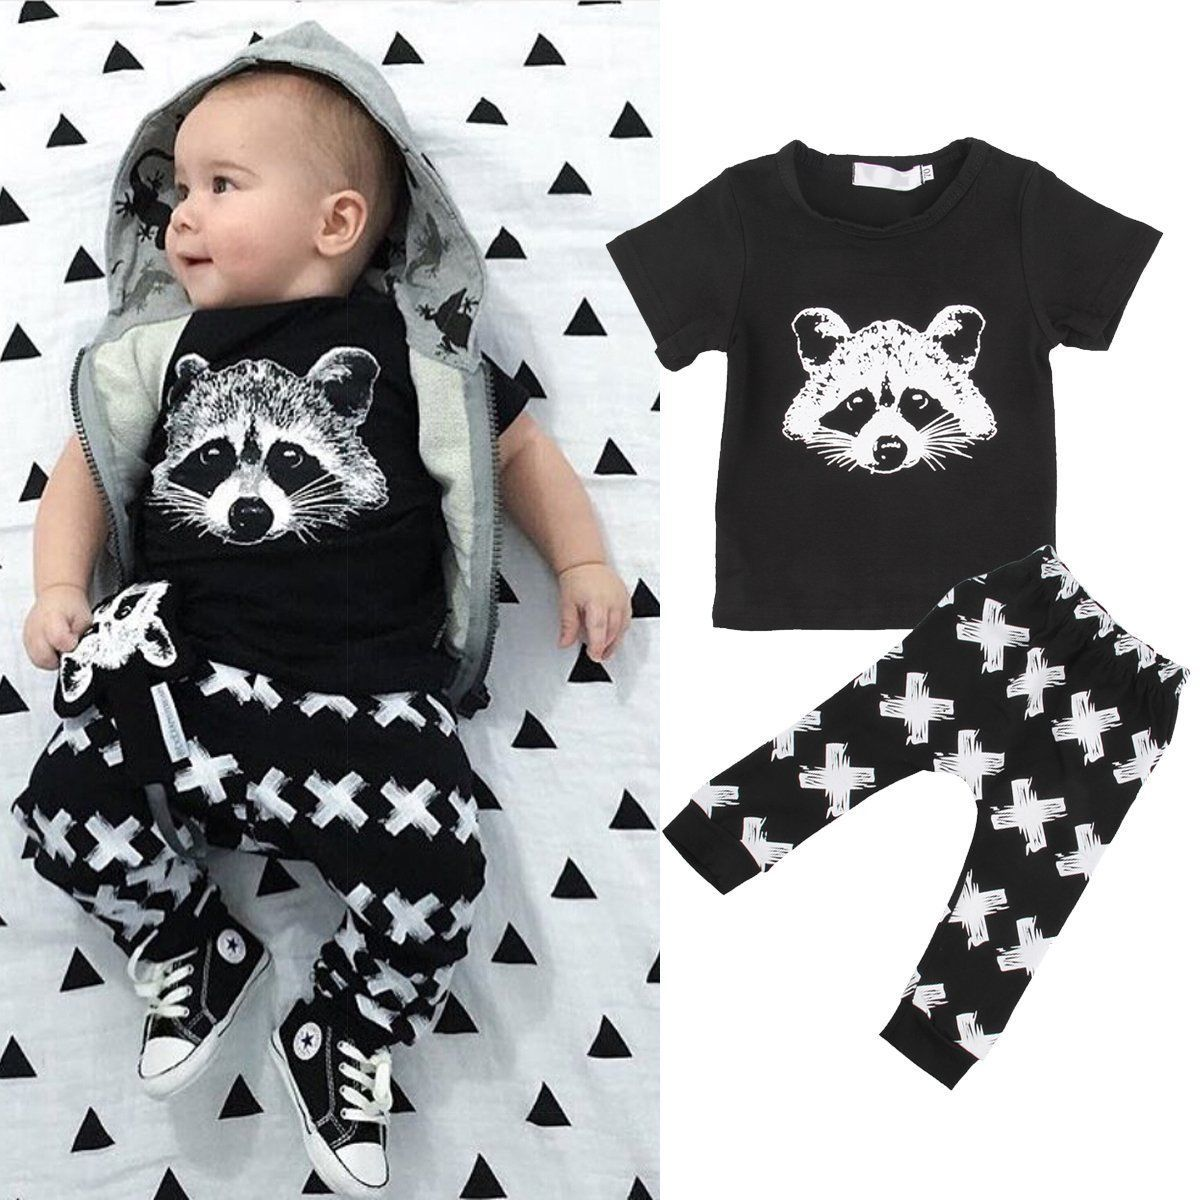 2PCS Causal Kids Baby Boy Clothes Top Shirt with Trousers Sports Pants Outfit